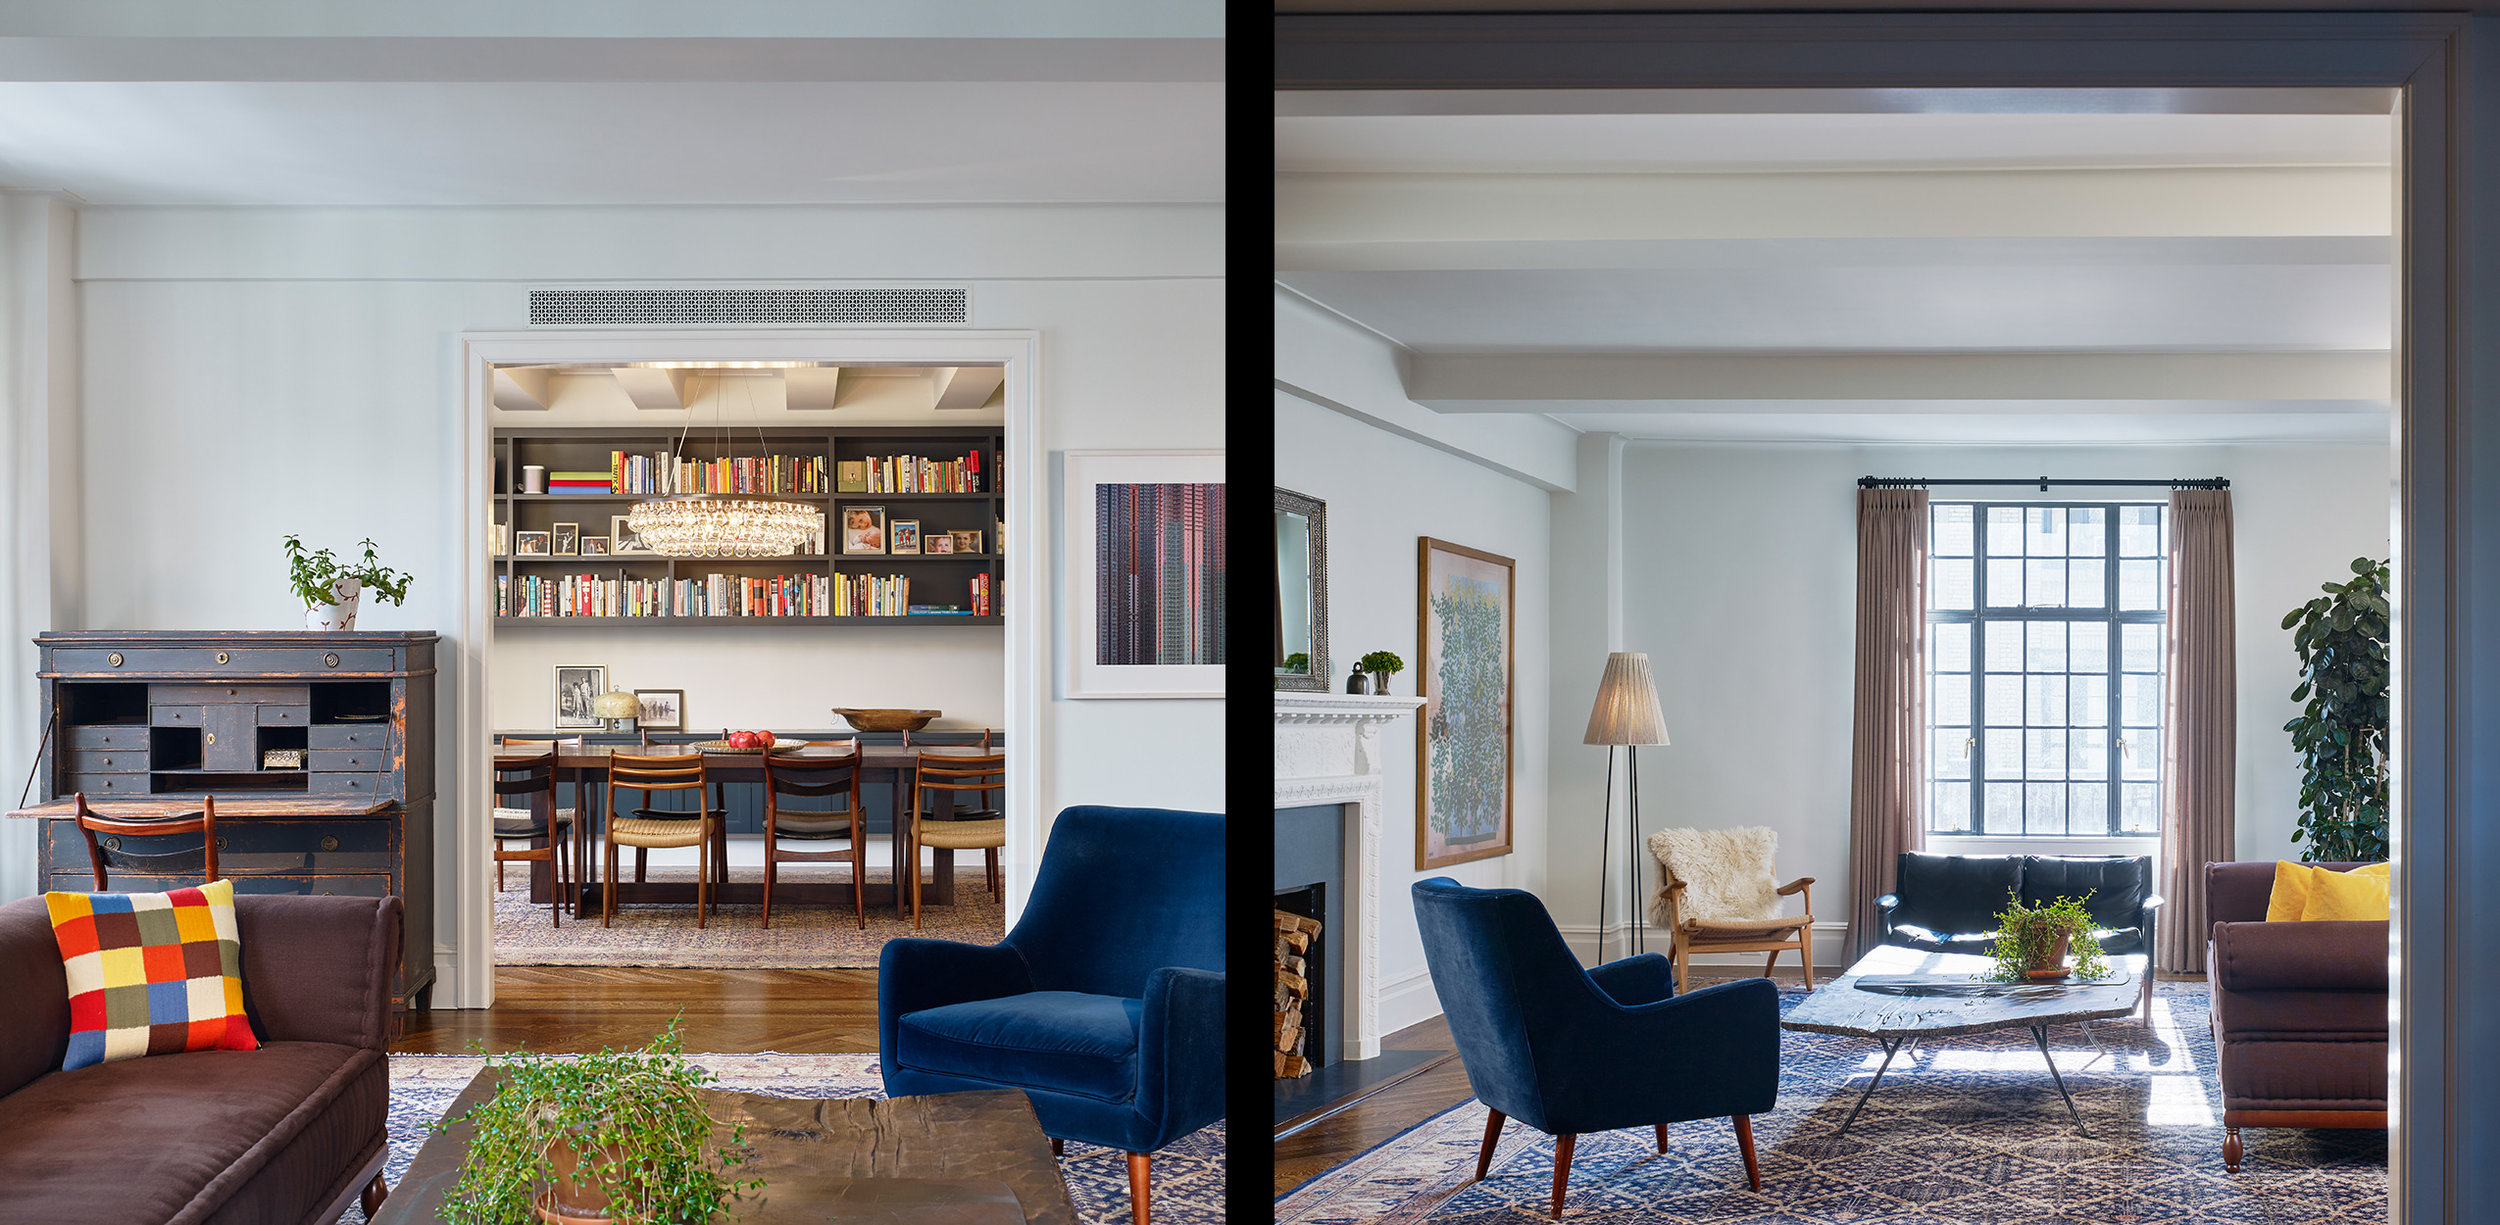 Joe Kitchen is a commercial photographer in New York & Philadelphia that photographs architecture & interiors, hotels & resorts, still life and beverage.  Joe regularly travels to Washington DC, Baltimore, Boston and the rest of North America for projects.